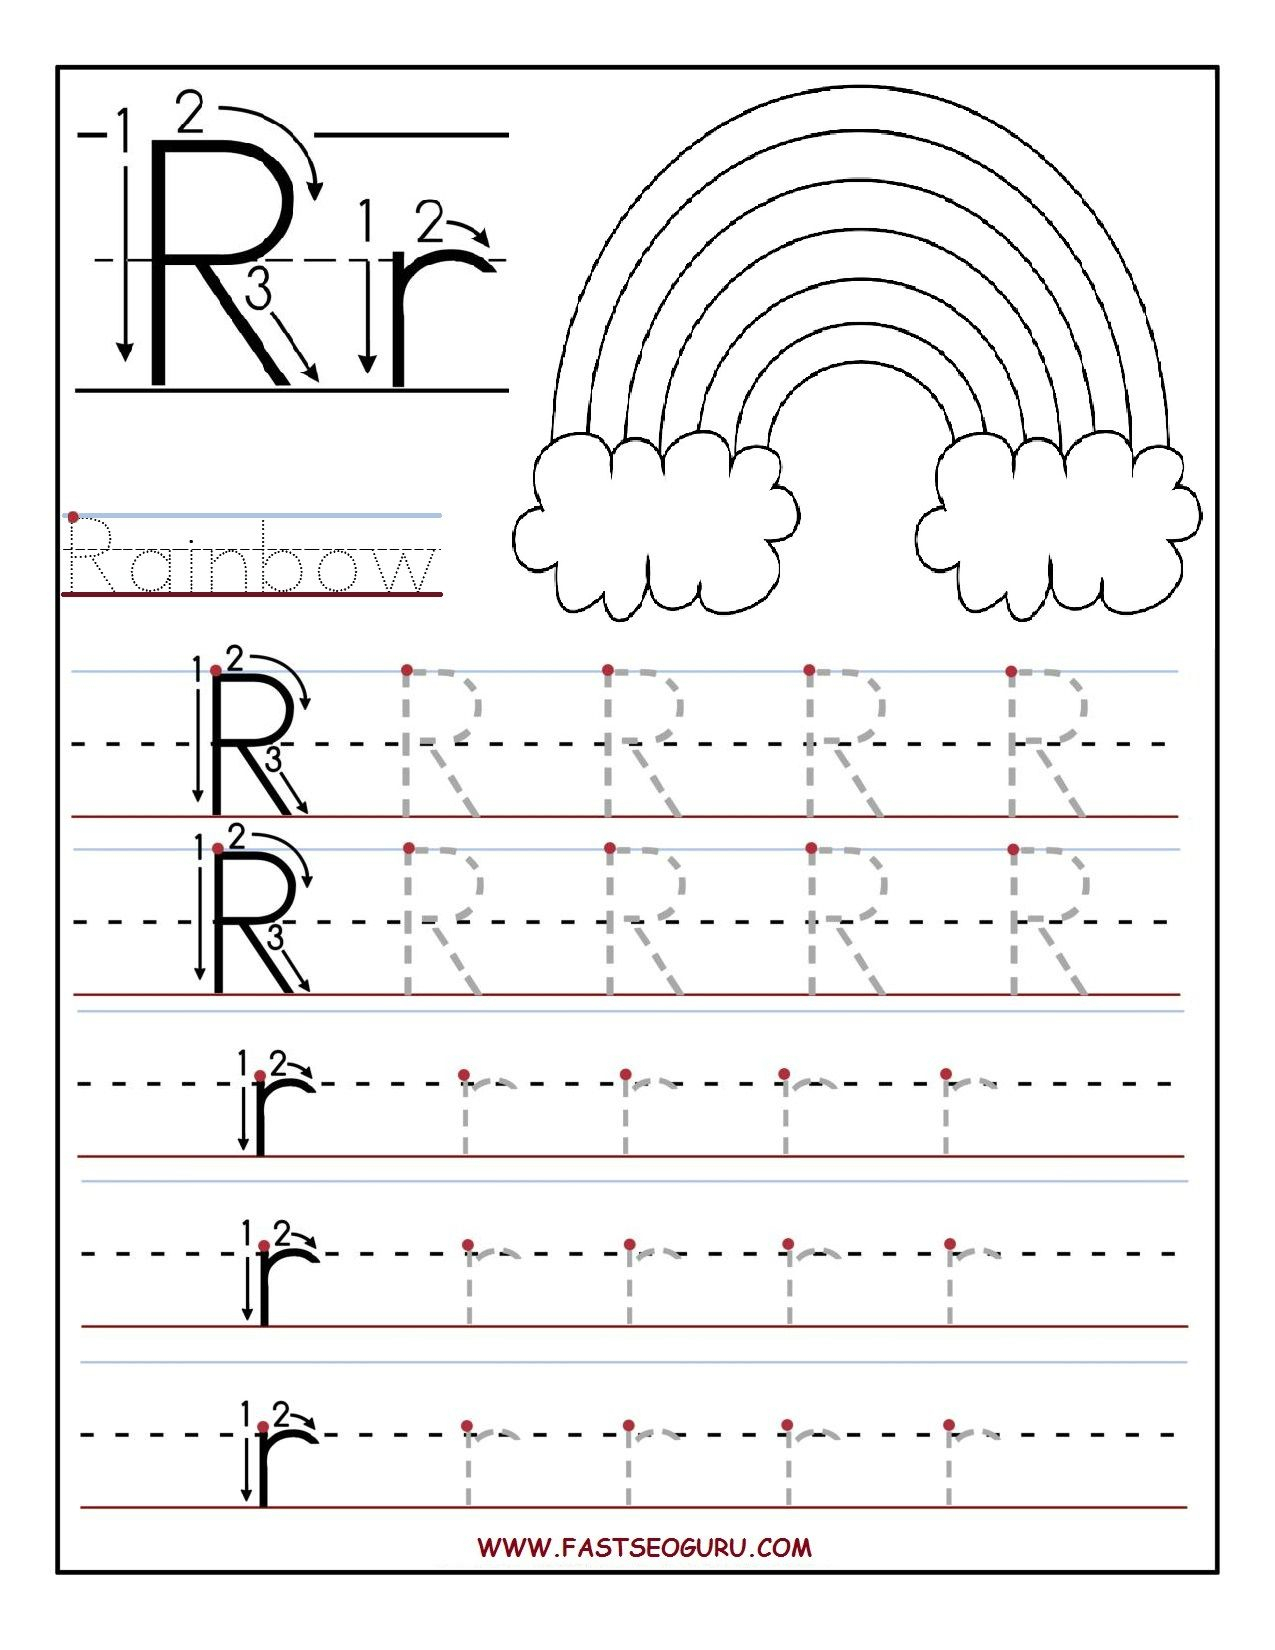 Printable Letter R Tracing Worksheets For Preschool | Letter within Letter Tracing R